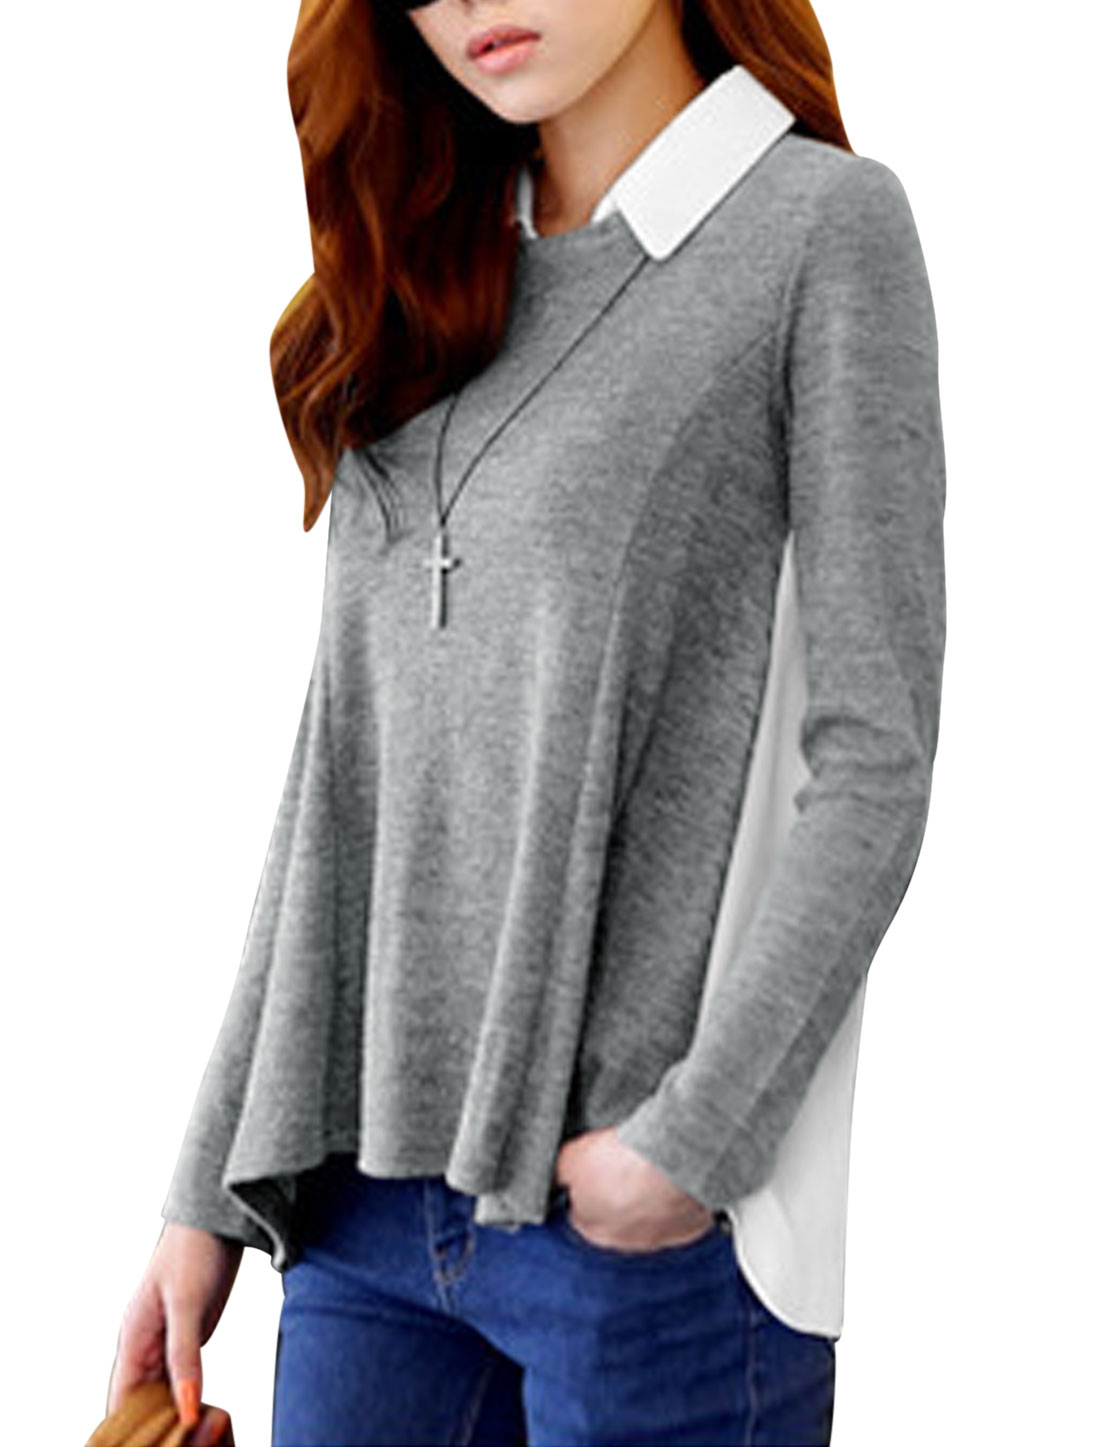 Ladies Light Gray White Removable Turn Down Collar Long Sleeves Chiffon Splice Shirt XS